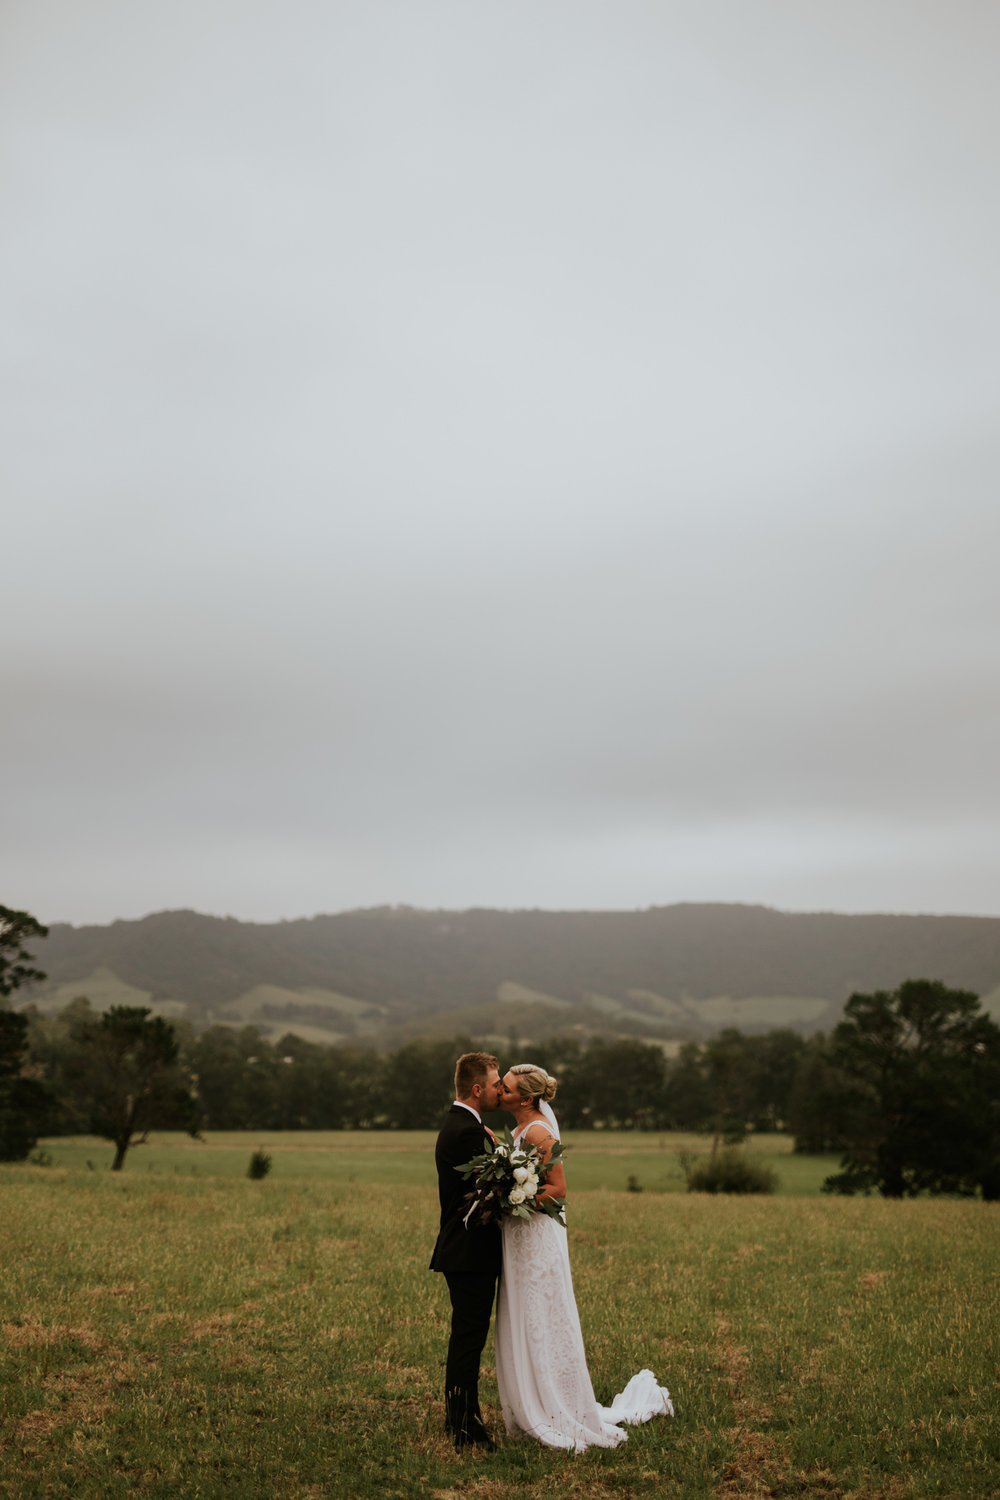 Lucy+Kyle+Kiama+Sebel+wedding-97.jpg